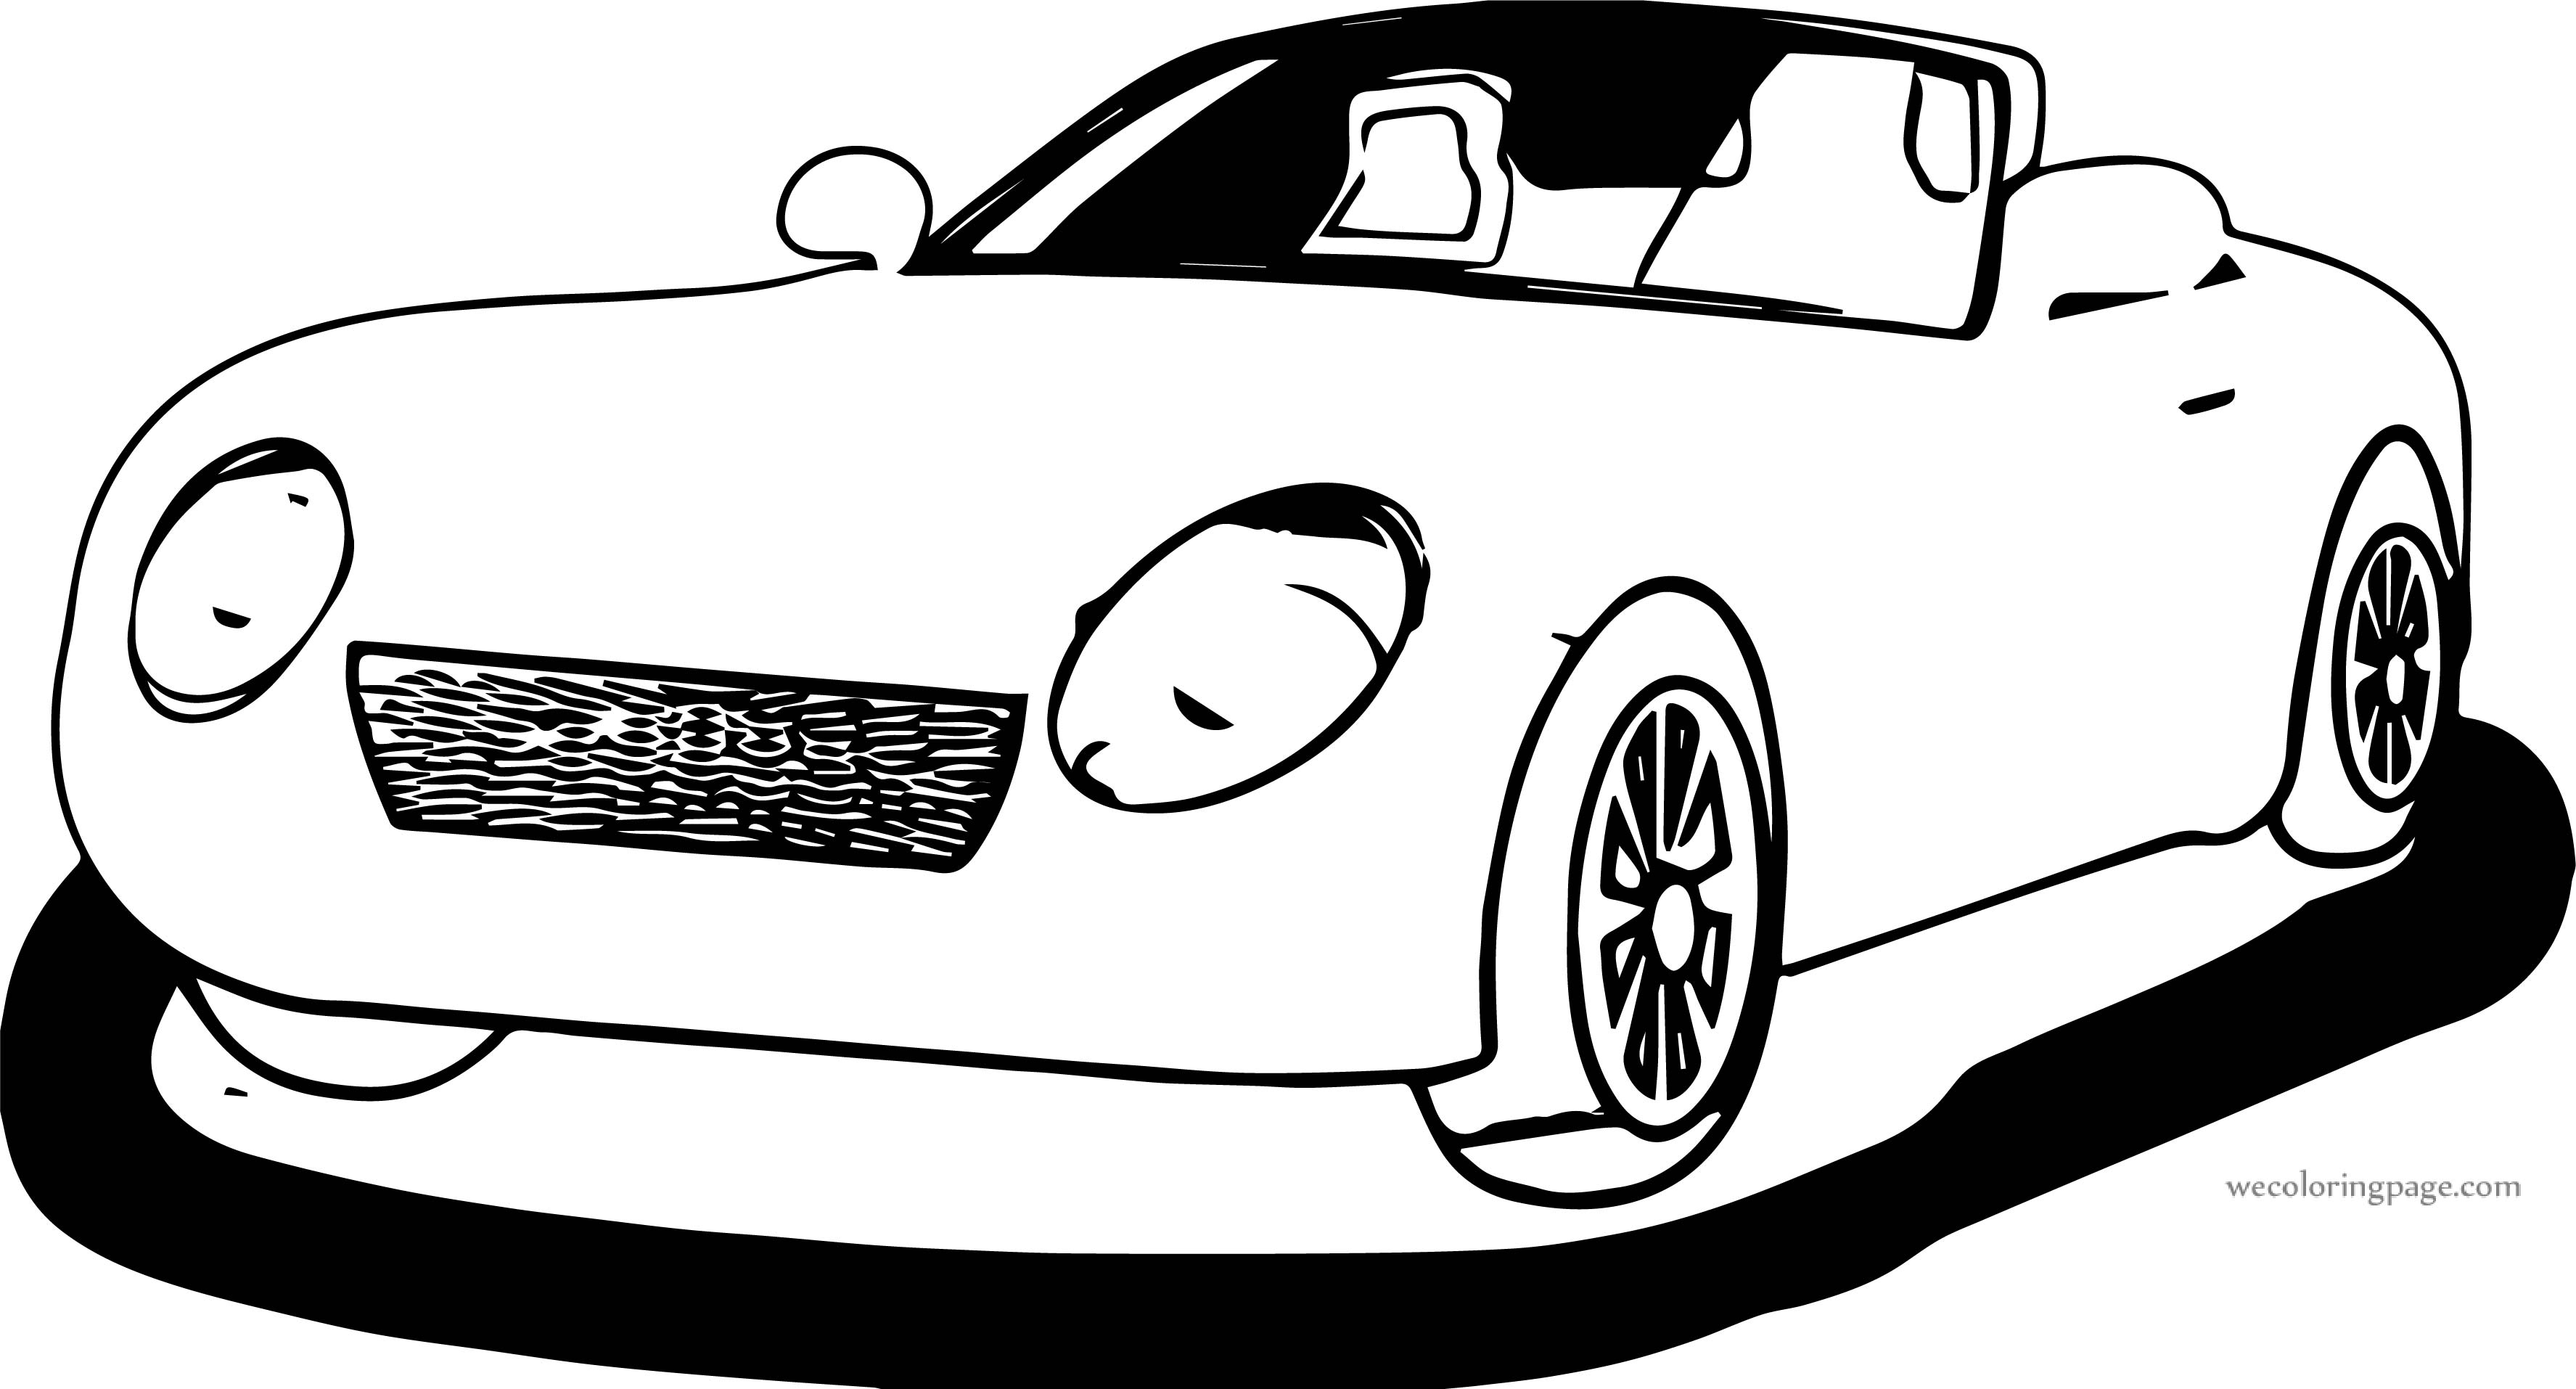 Car Wecoloringpage Coloring Page 184